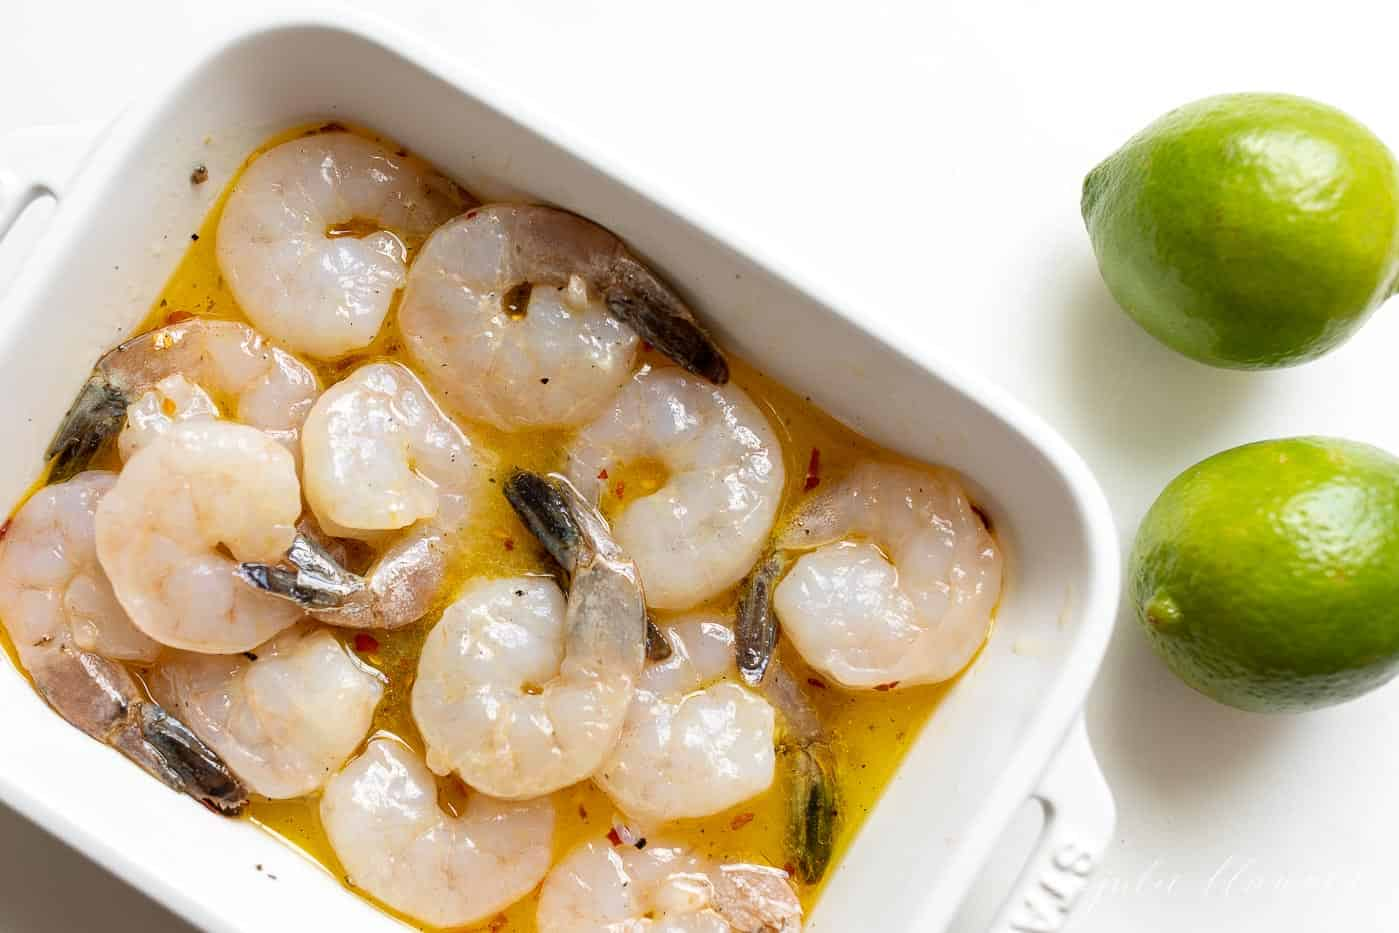 A white dish with marinating tequila lime shrimp for grilled shrimp skewers.